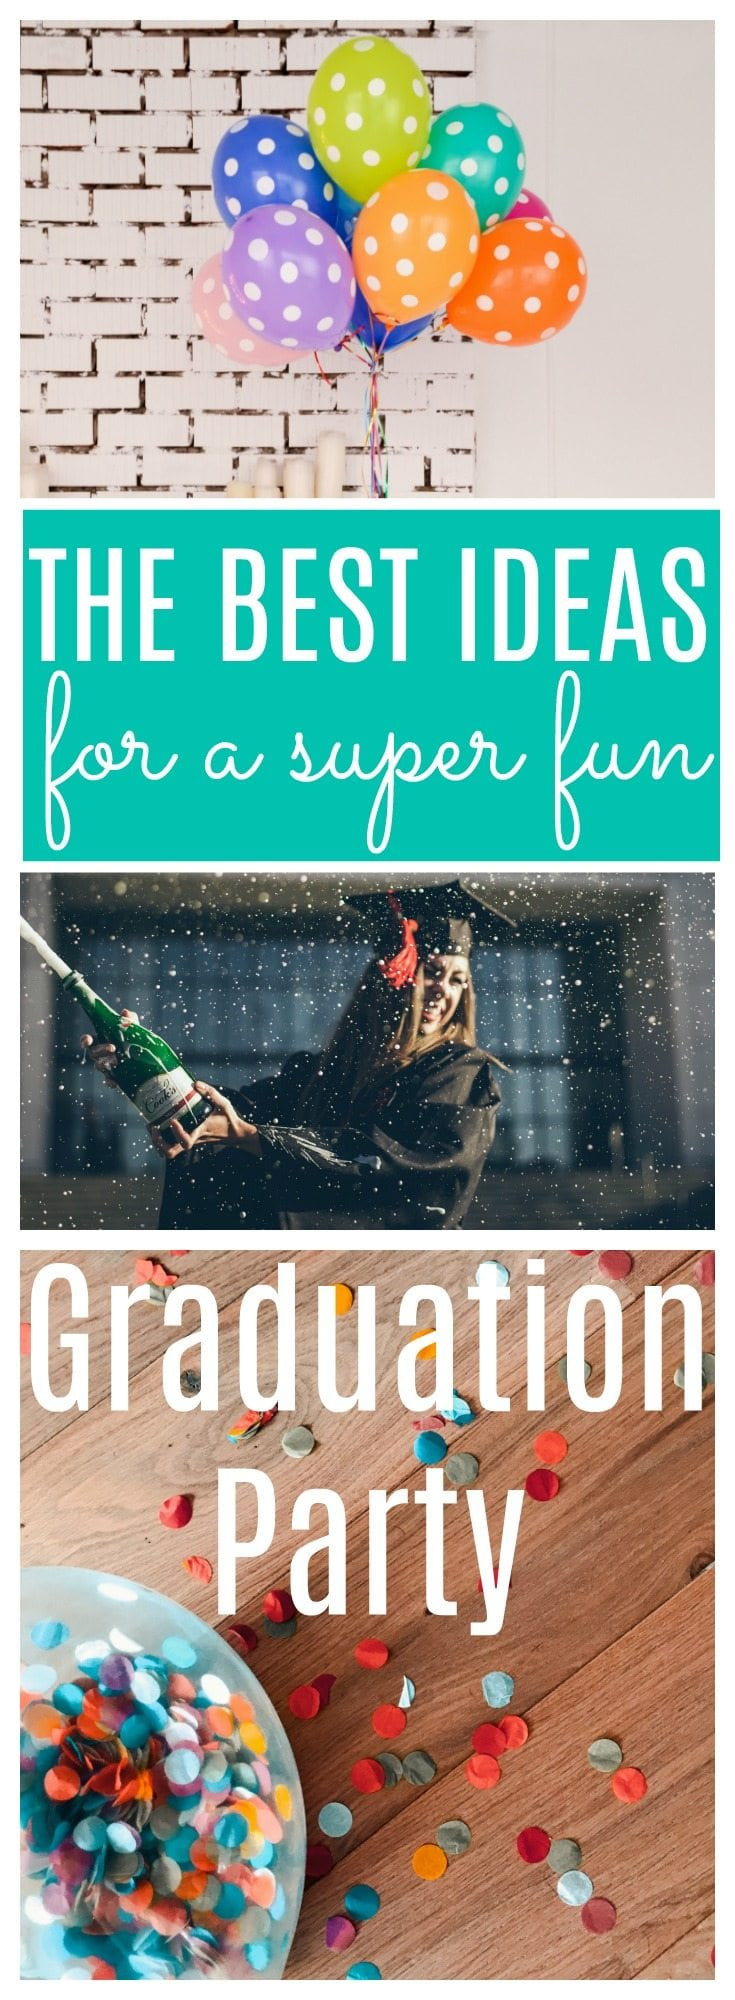 College Graduation Party Ideas For Her  Graduation Party Ideas How to Celebrate Your Senior s Big Day